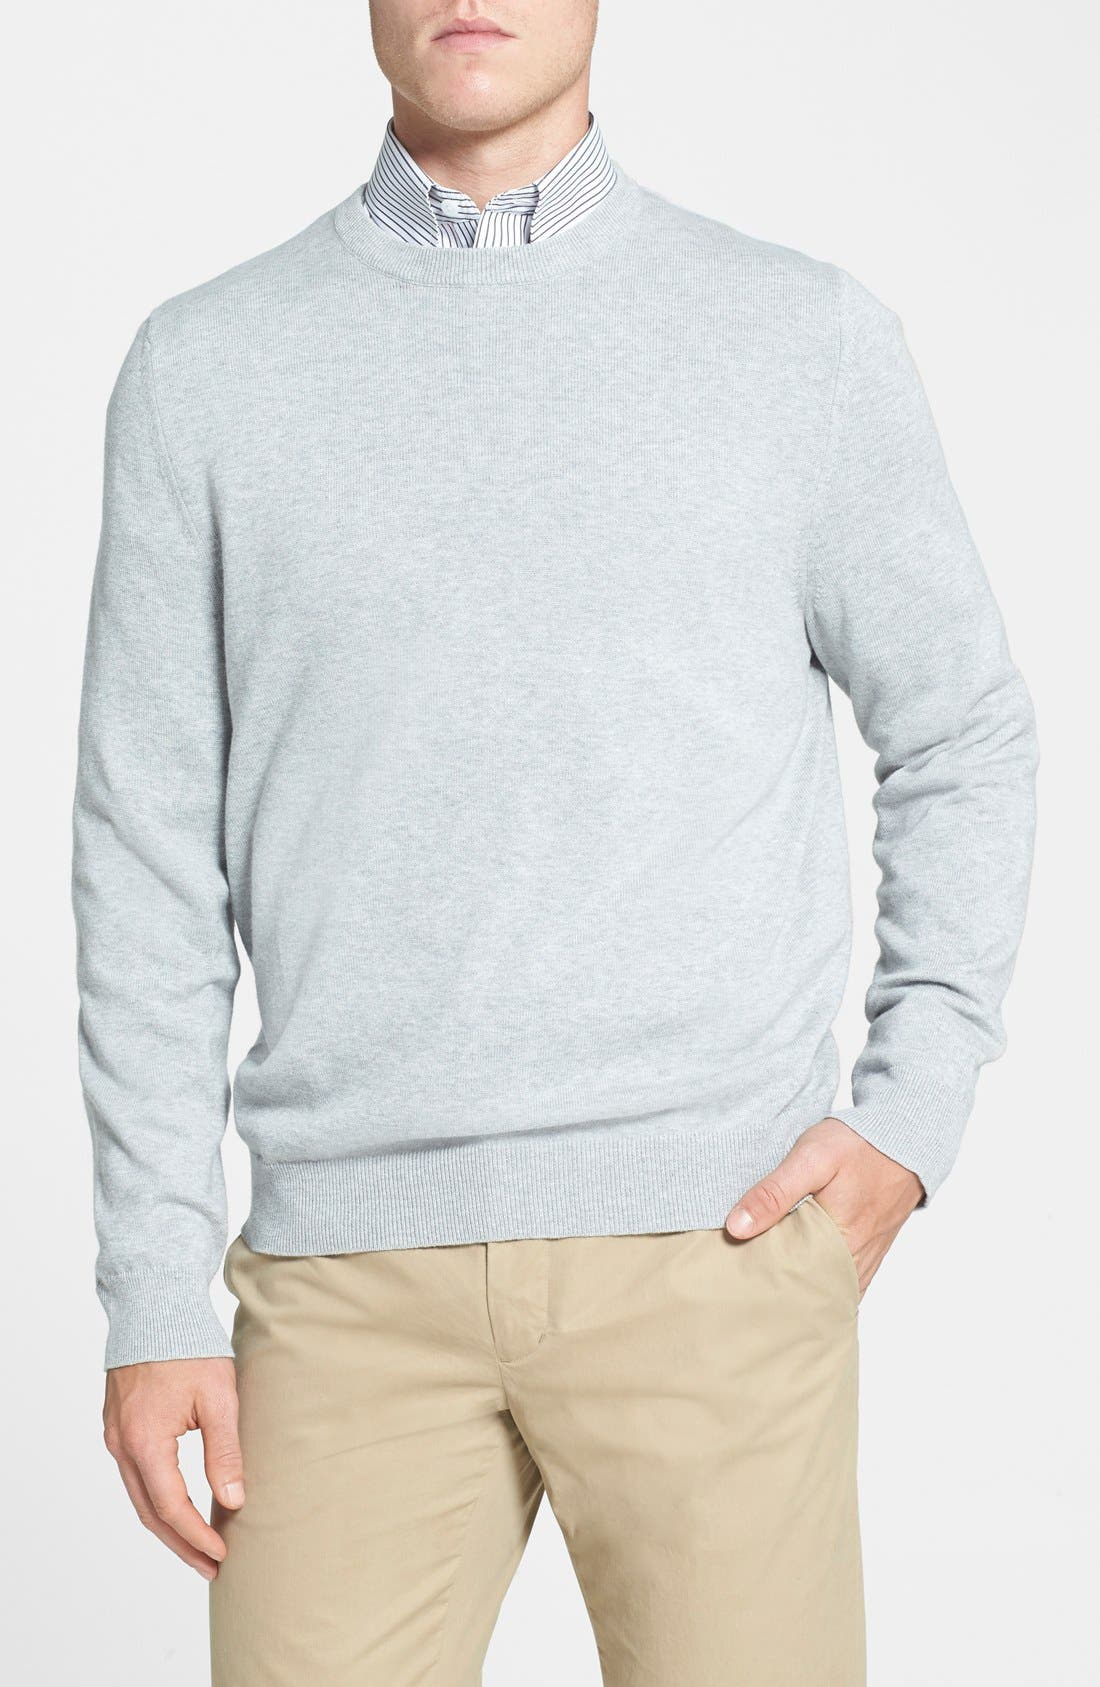 Alternate Image 1 Selected - Nordstrom Men's Shop Cotton & Cashmere Crewneck Sweater (Regular & Tall)